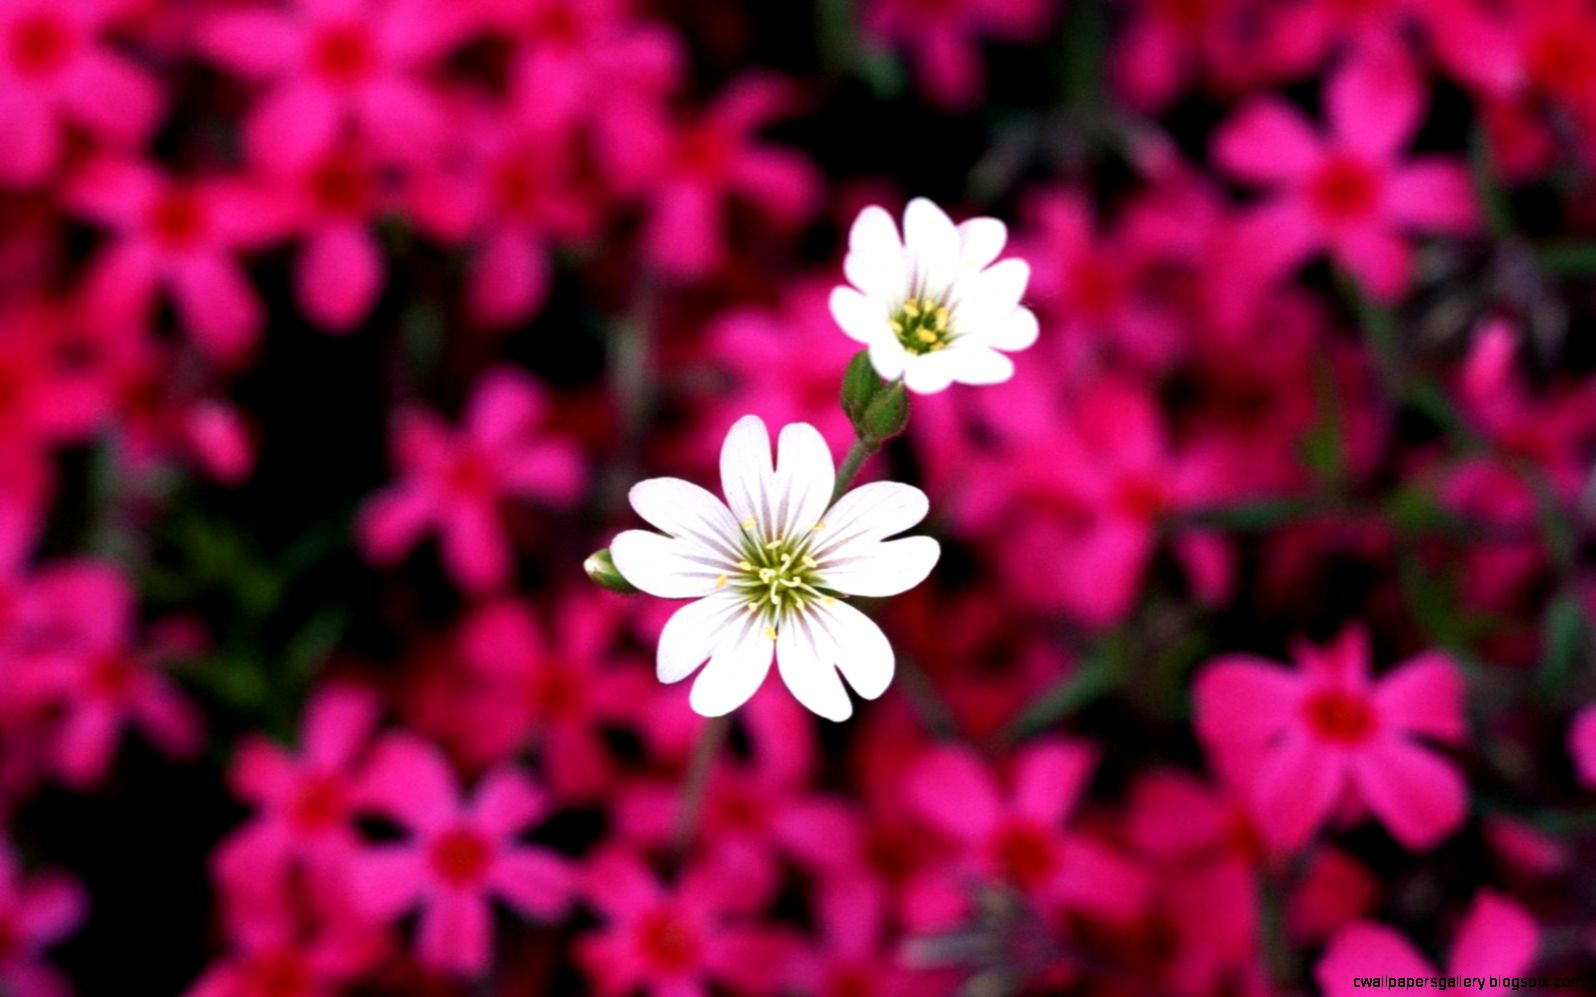 Collection of Desktop Flowers Wallpaper Backgrounds on Wall Papers